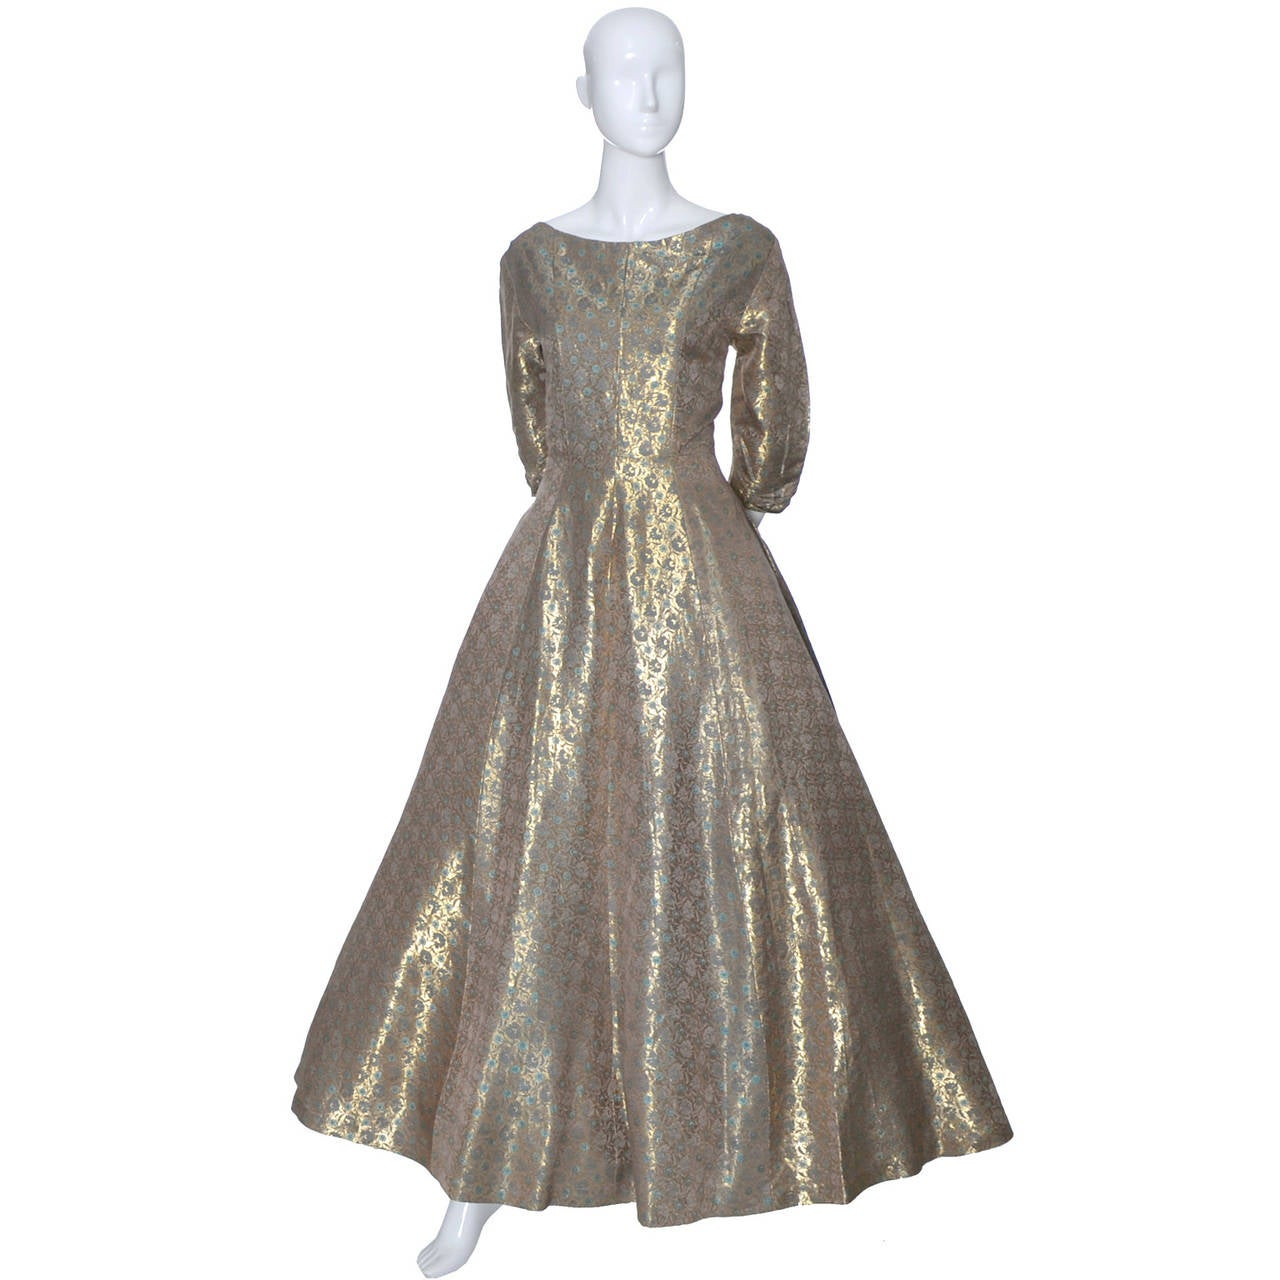 Hattie Carnegie 1950s Vintage Dress Gold Metallic Lame Blue Floral Evening Gown 2